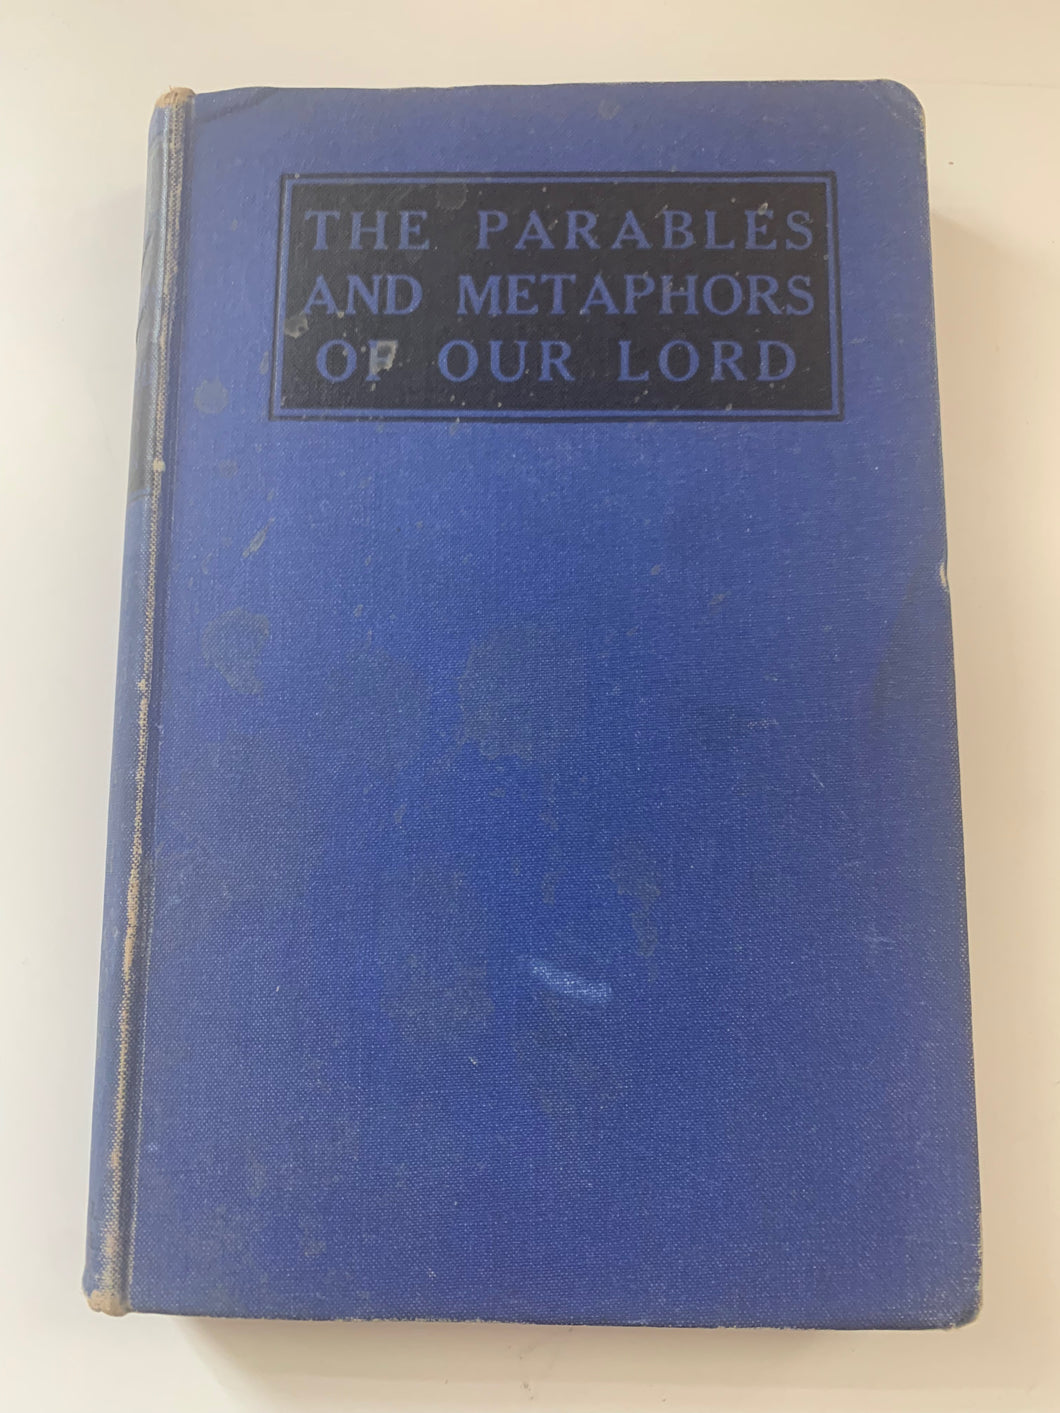 Parables and Metaphors of Our Lord by G. Campbell Morgan